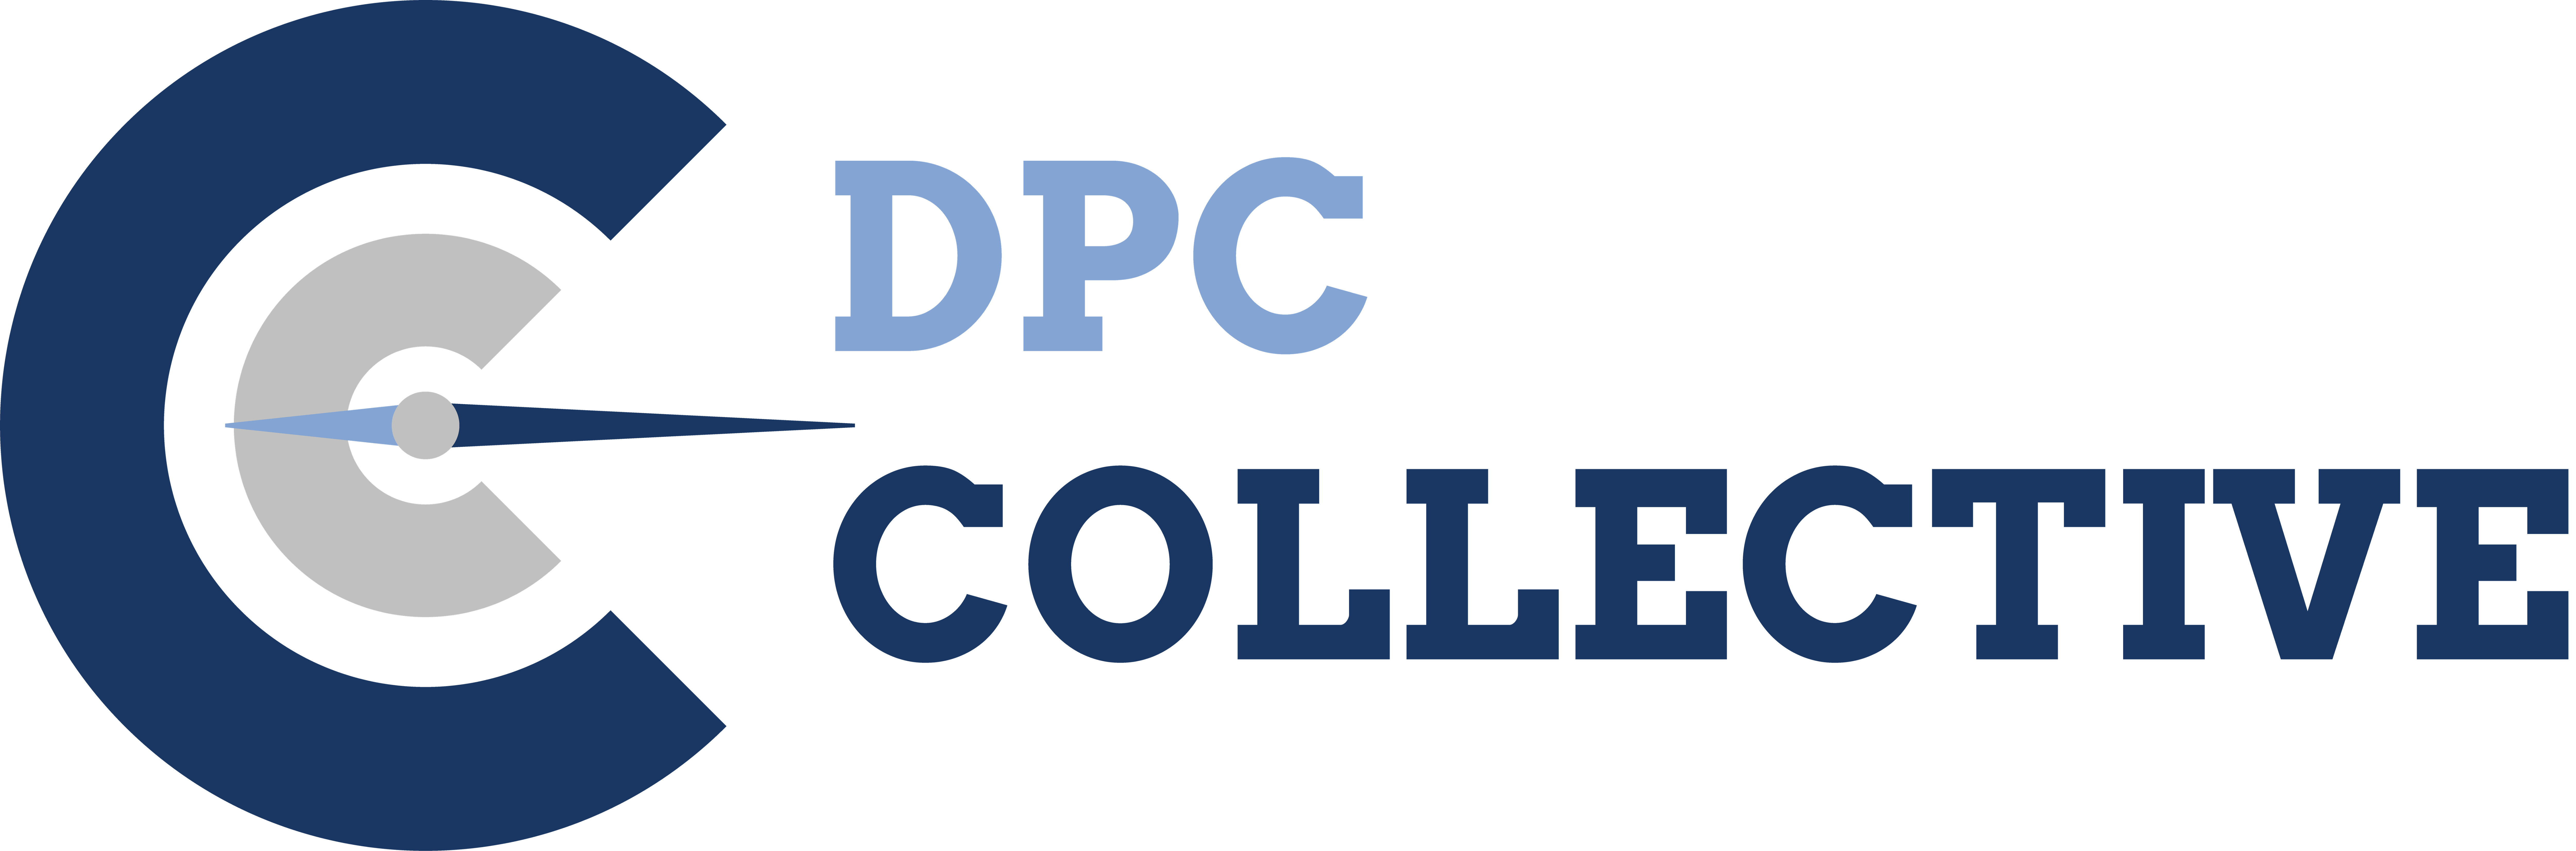 dpc_collective_3_combined